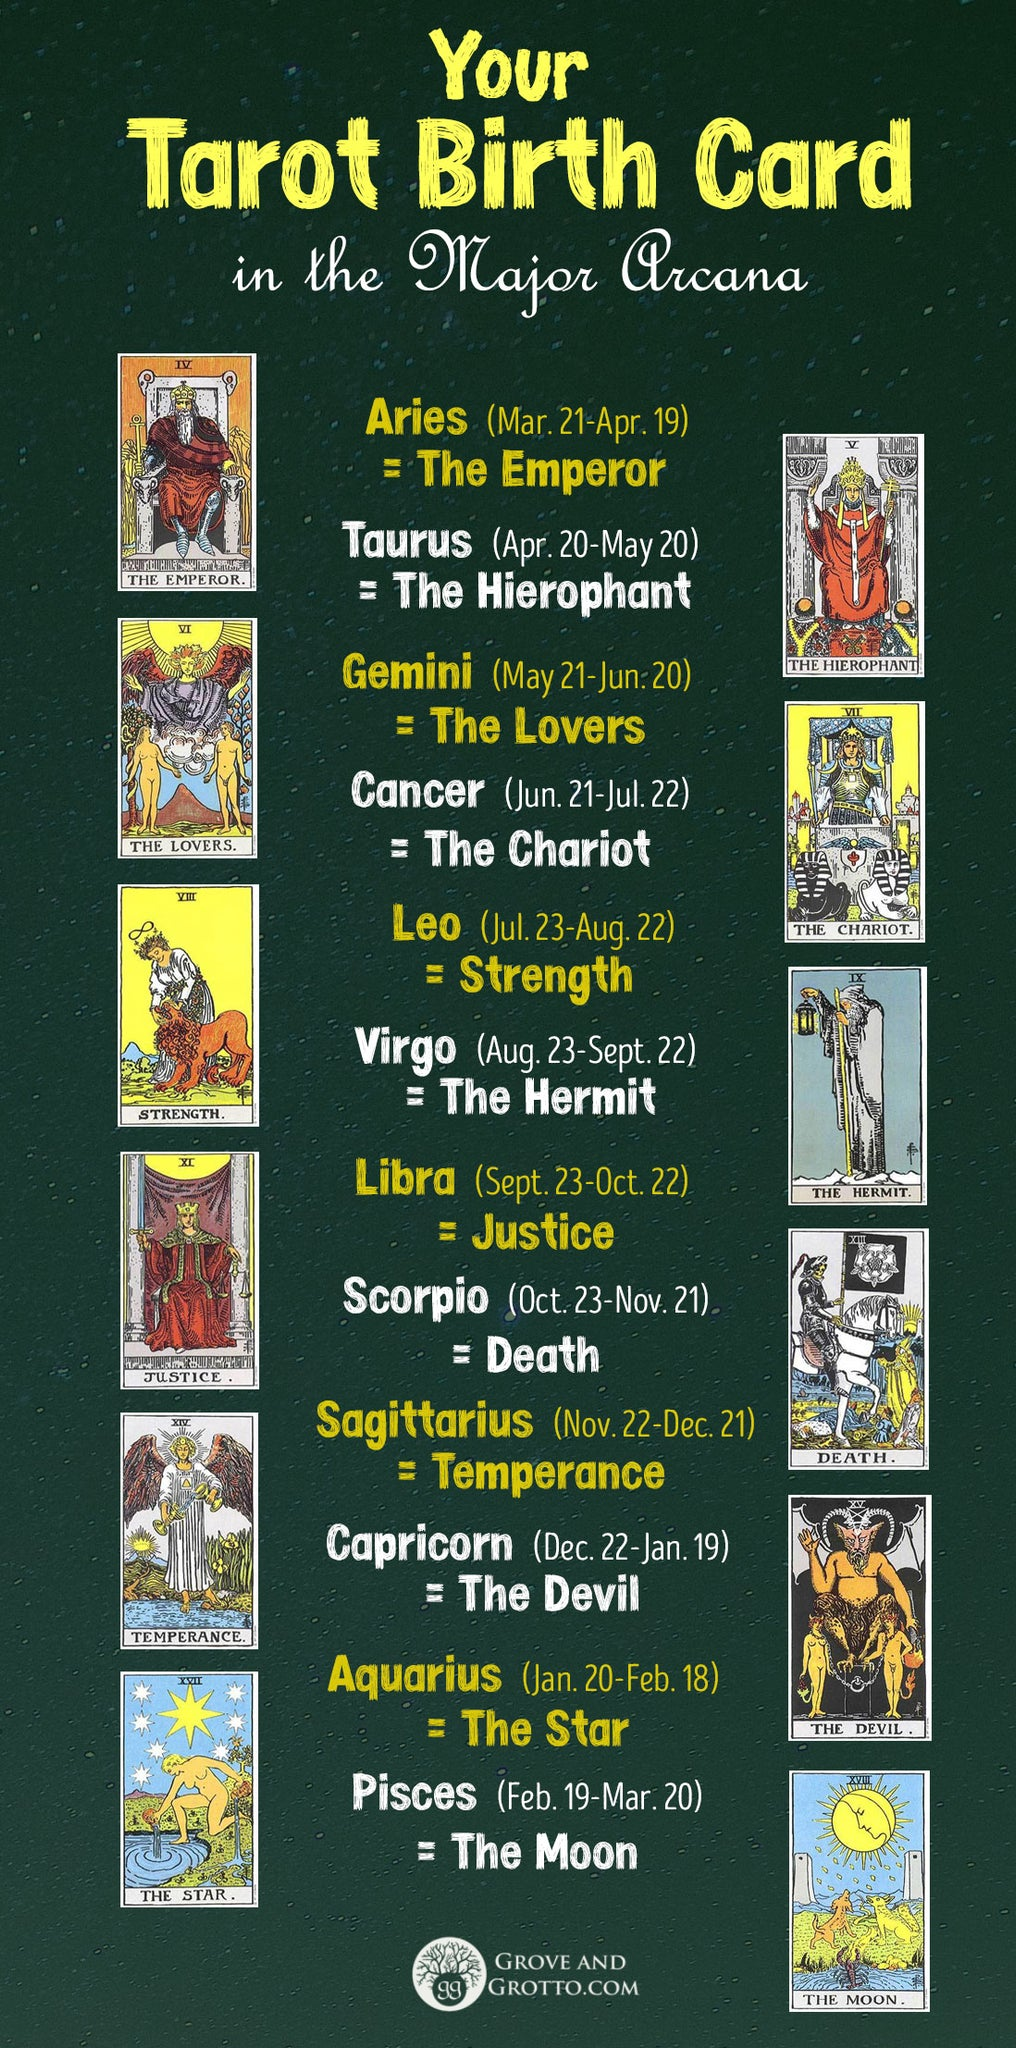 Discover your Tarot birth card in the Major Arcana – Grove and Grotto